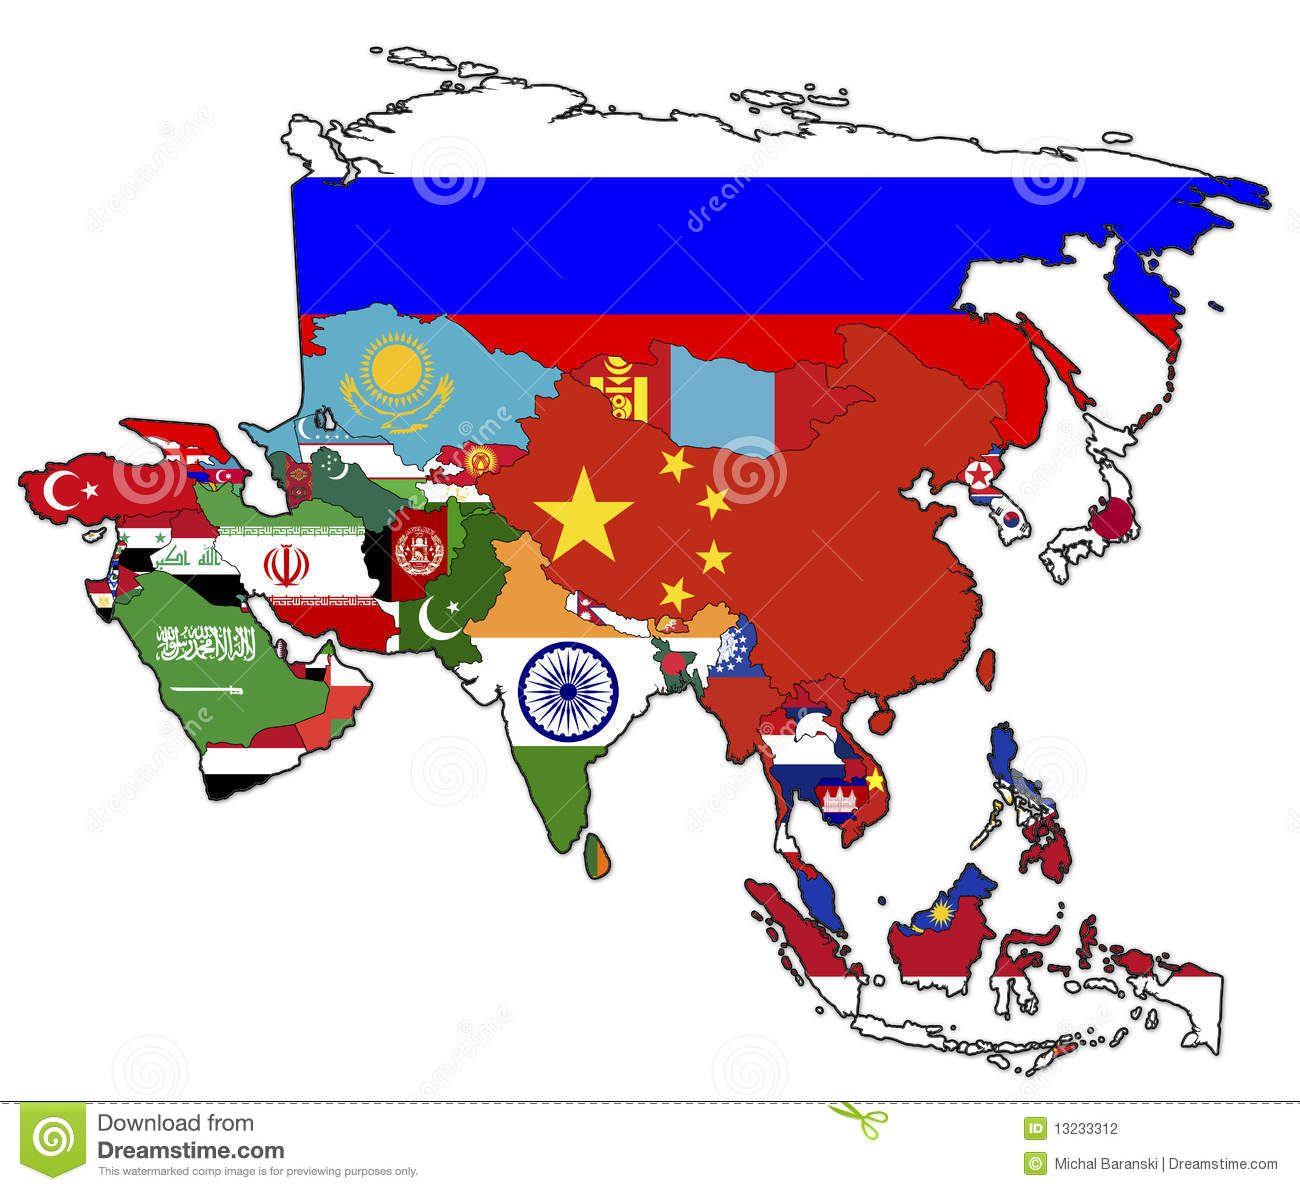 Political map of asia stock illustration. Illustration of holiday ...